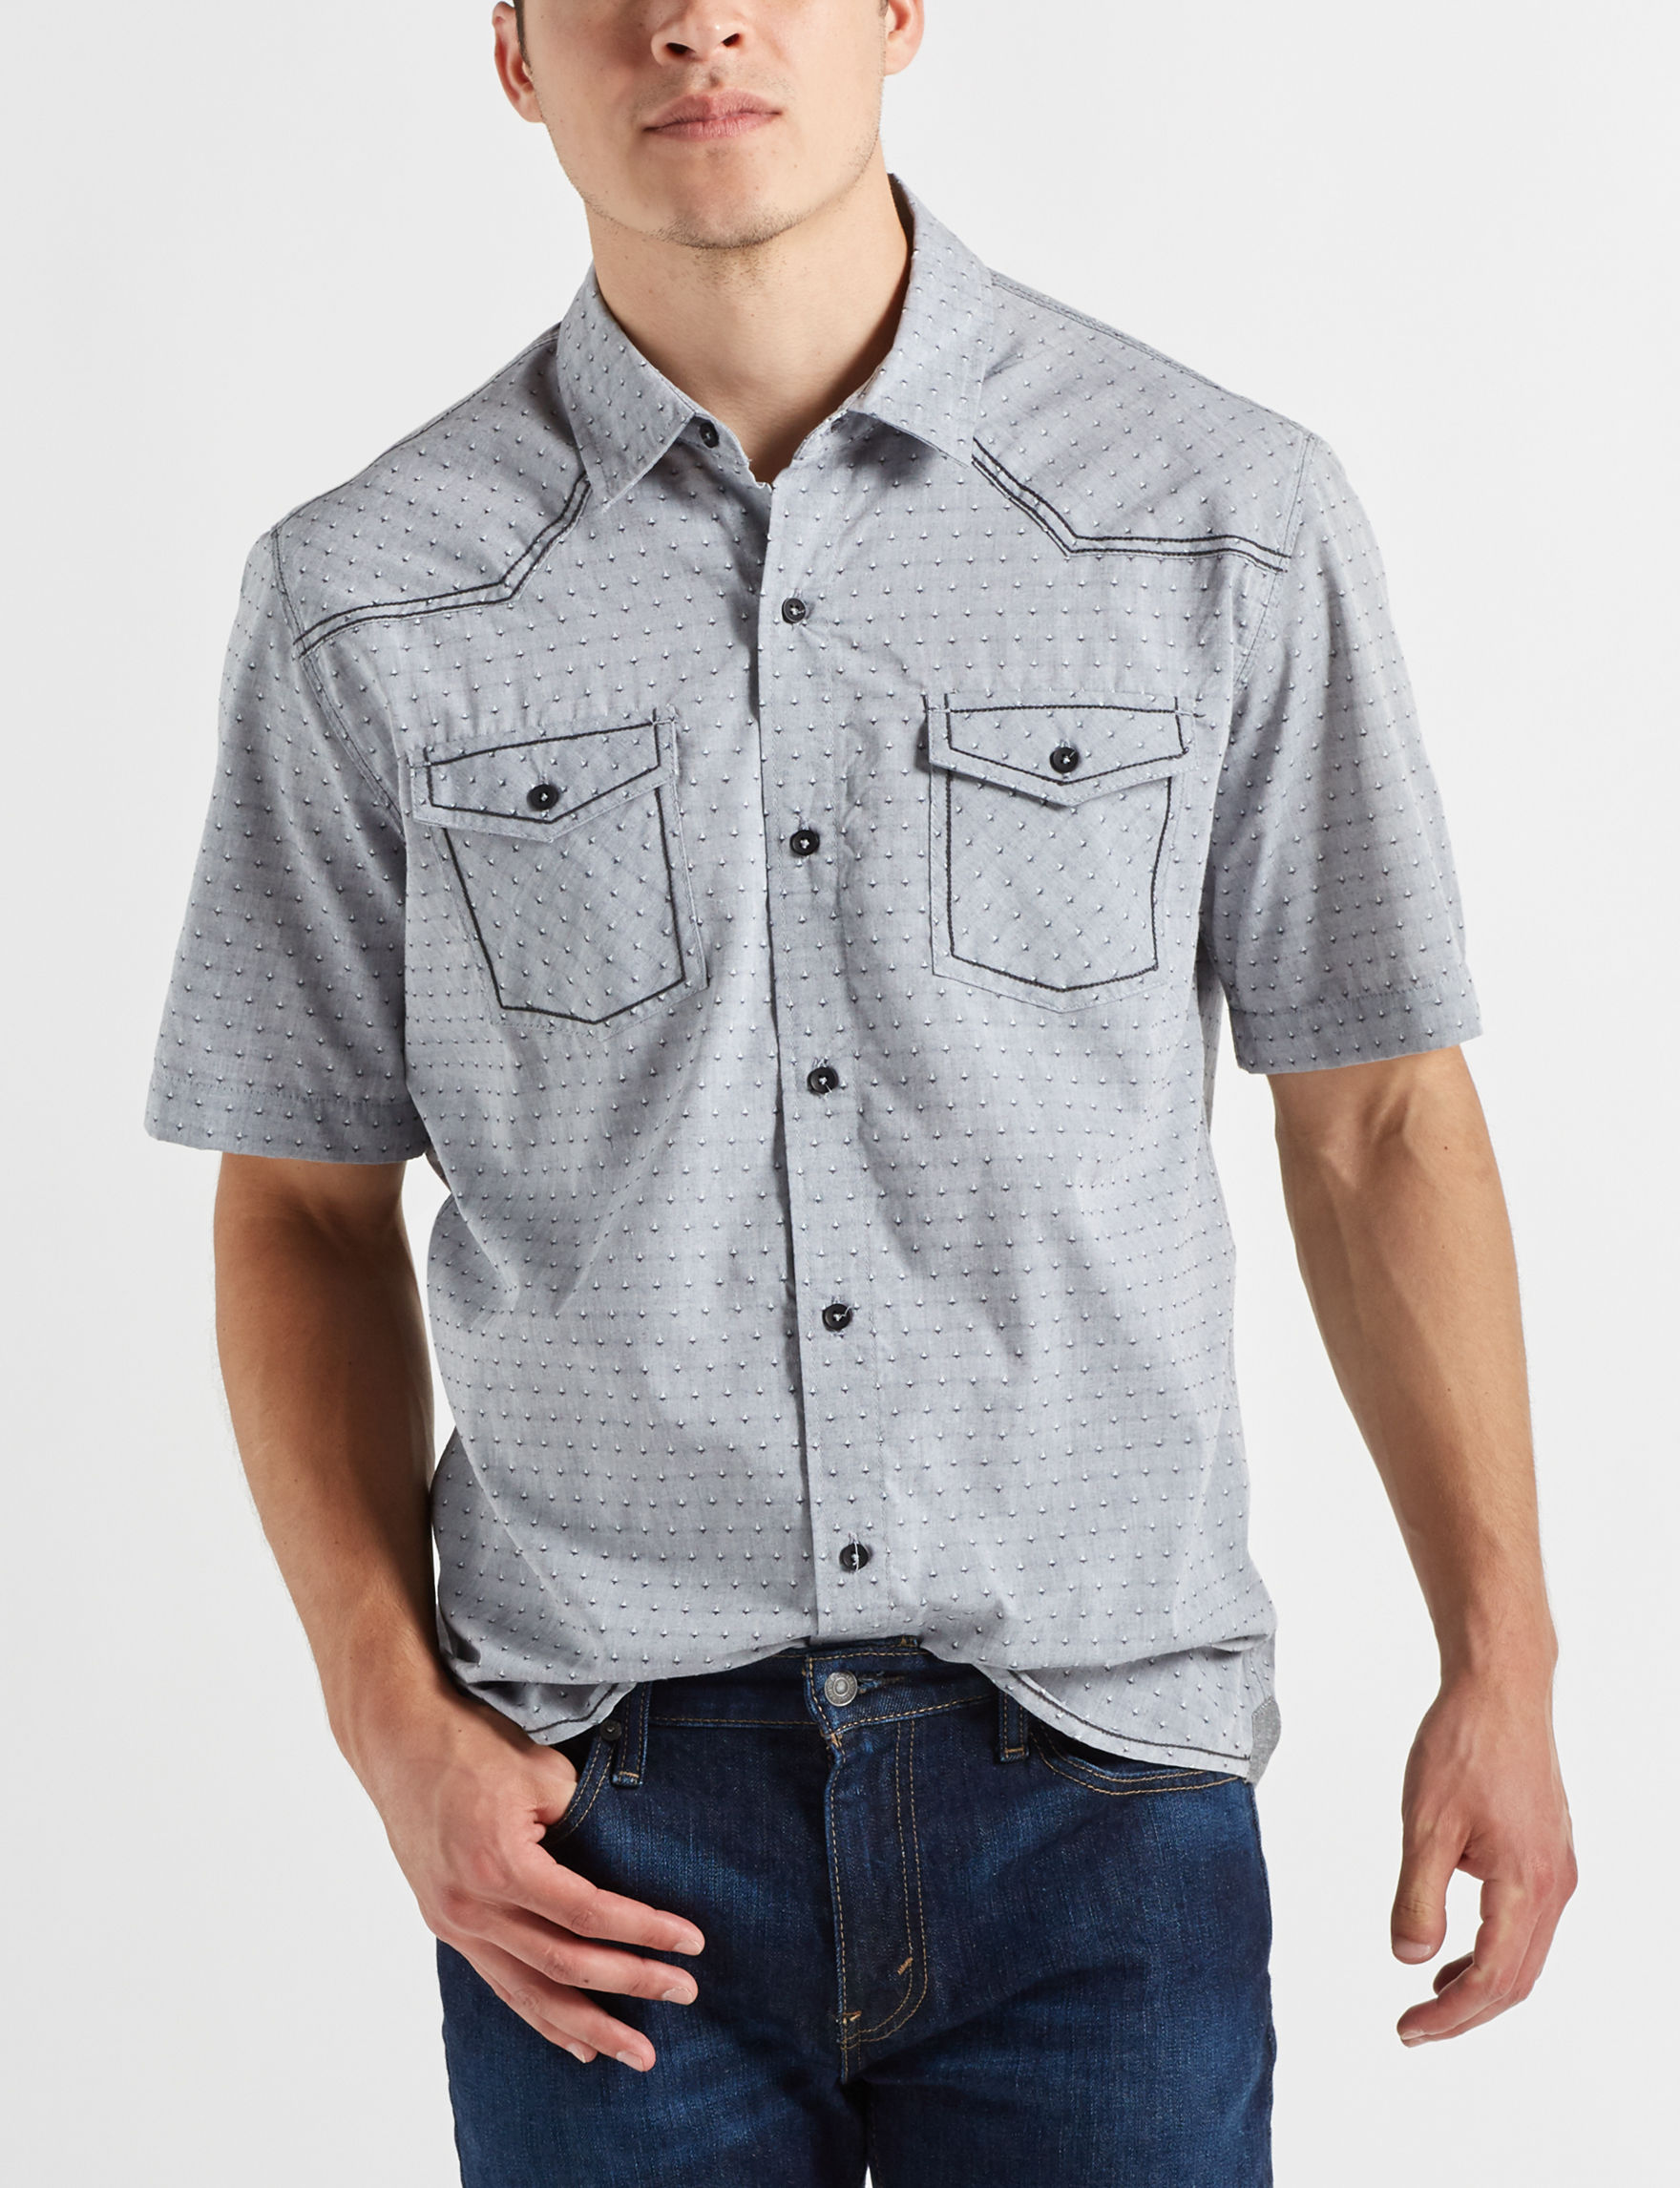 Scope Imports Grey Multi Casual Button Down Shirts